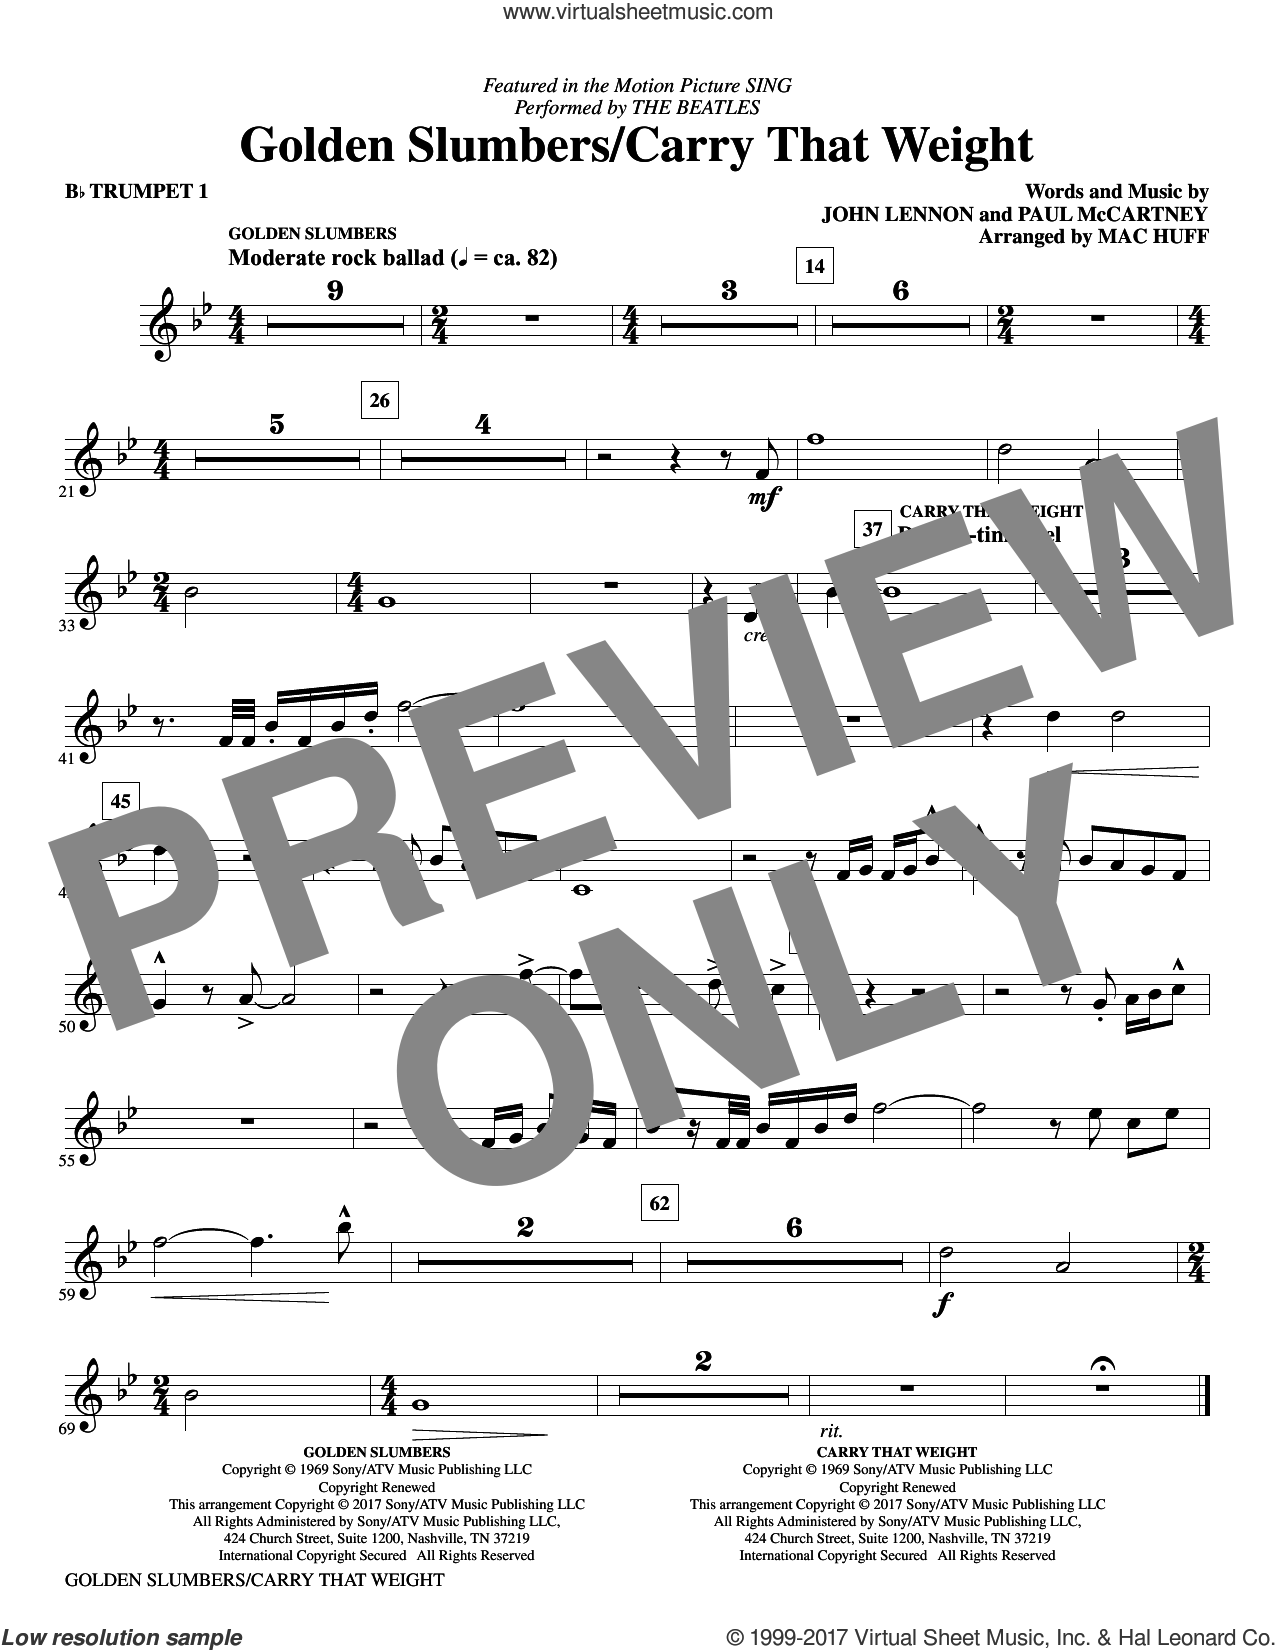 Golden Slumbers/Carry That Weight (complete set of parts) sheet music for orchestra/band by The Beatles, John Lennon, Mac Huff and Paul McCartney, intermediate skill level